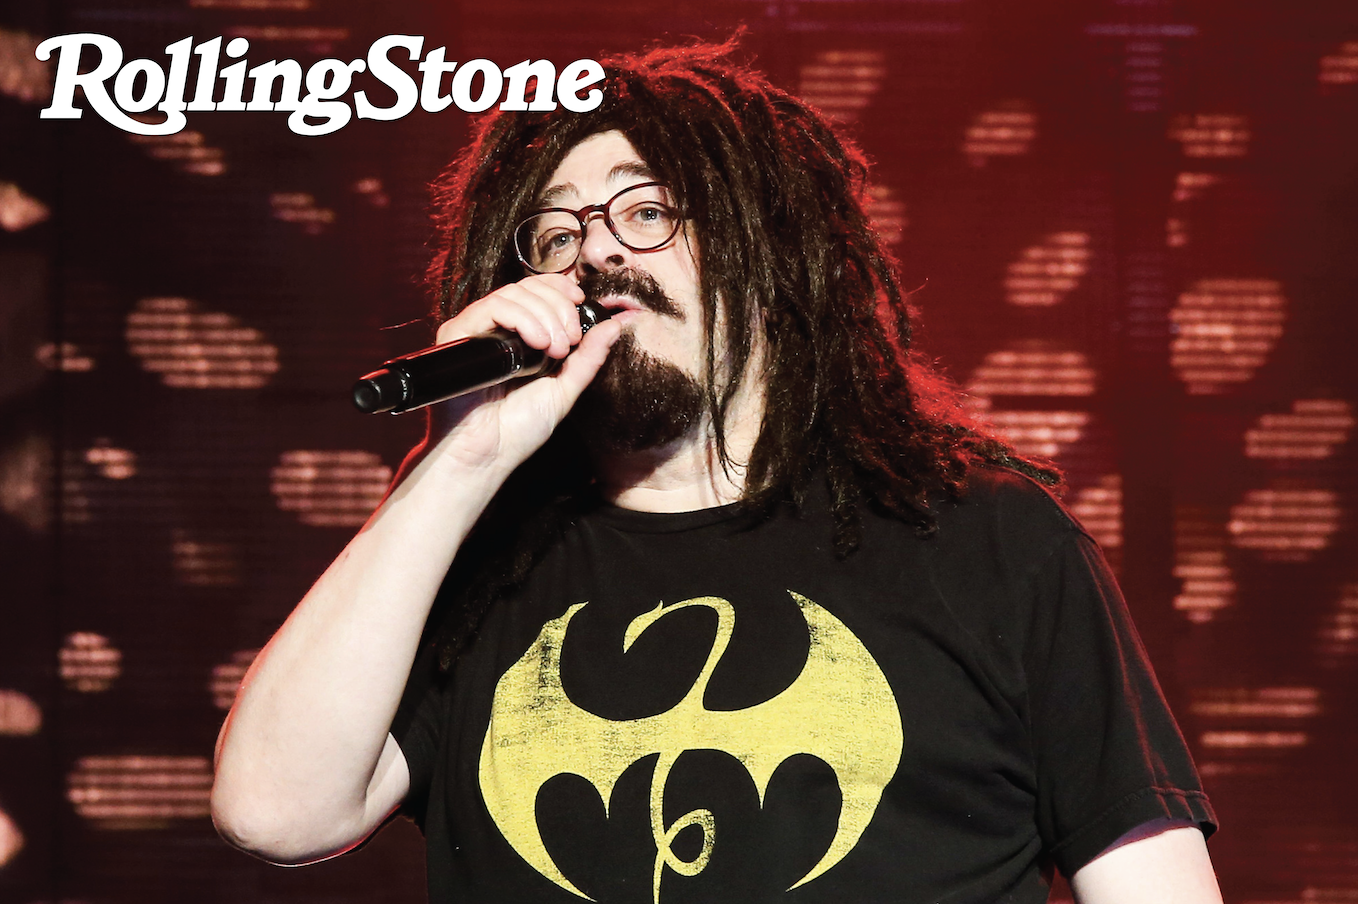 Rolling Stone May 2019 - Counting Crows 5 Songs ft Maria Taylor.png